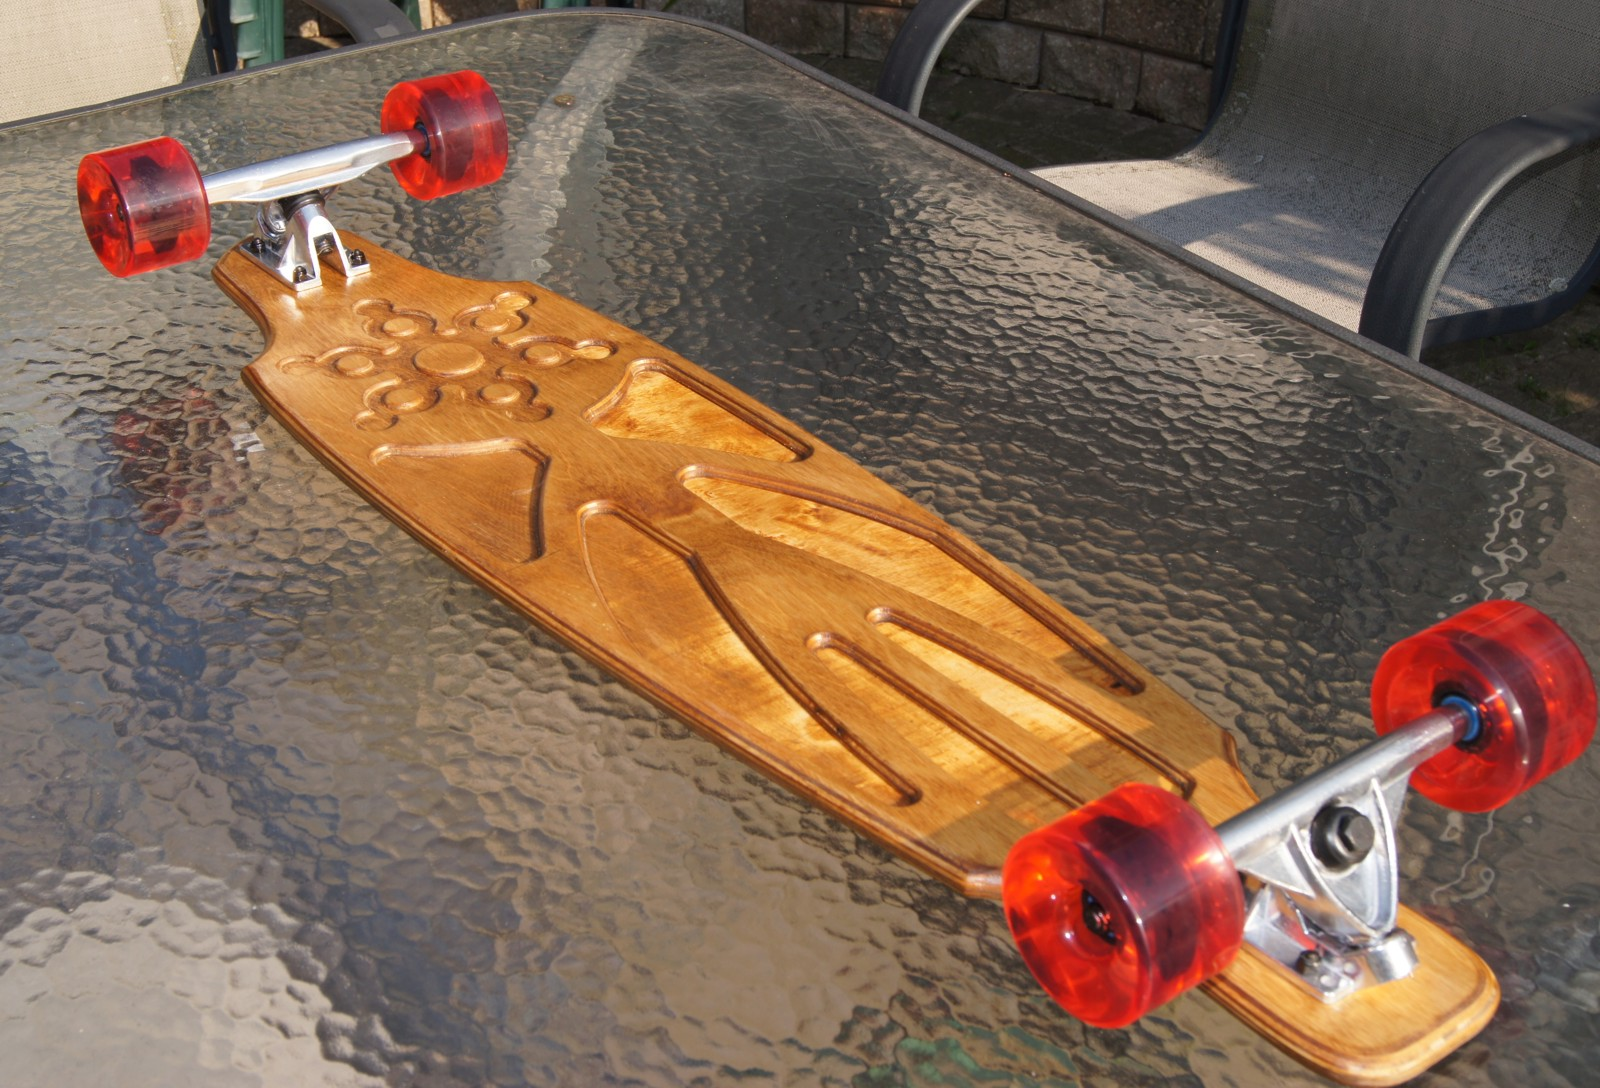 longboard truck template - category archive for 39 art 39 at buildlog net blog